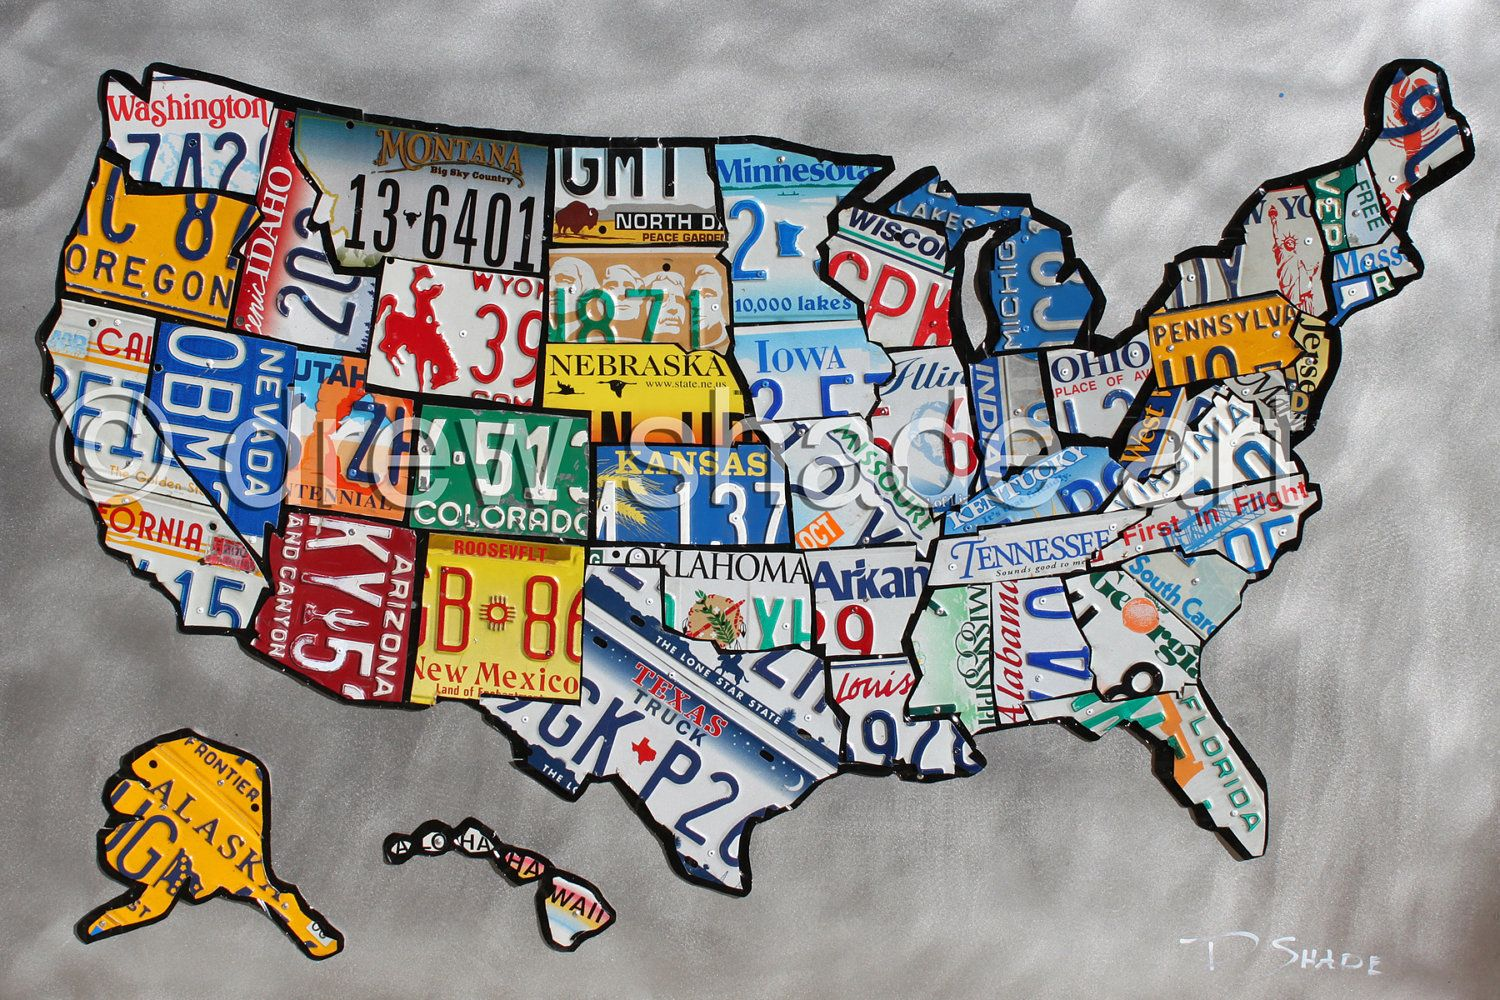 Stylized Us State Map Infographic Rough Globalinterco - Stylized us state map infographic rough